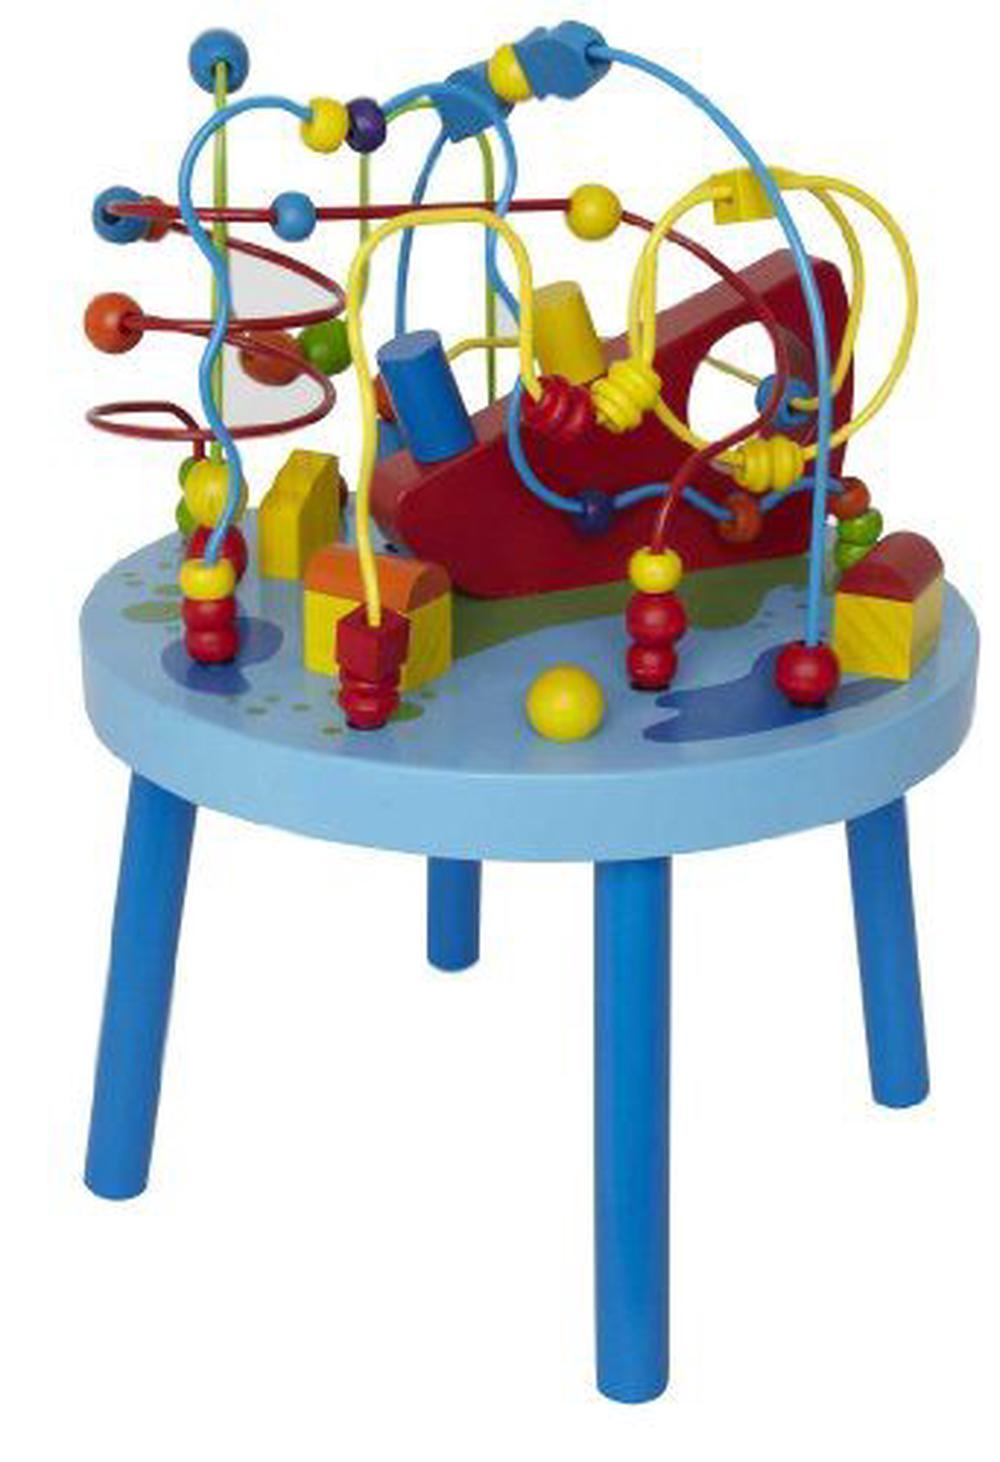 Hape Ocean Adventure Toddler Table Wooden Maze | Buy online at The Nile